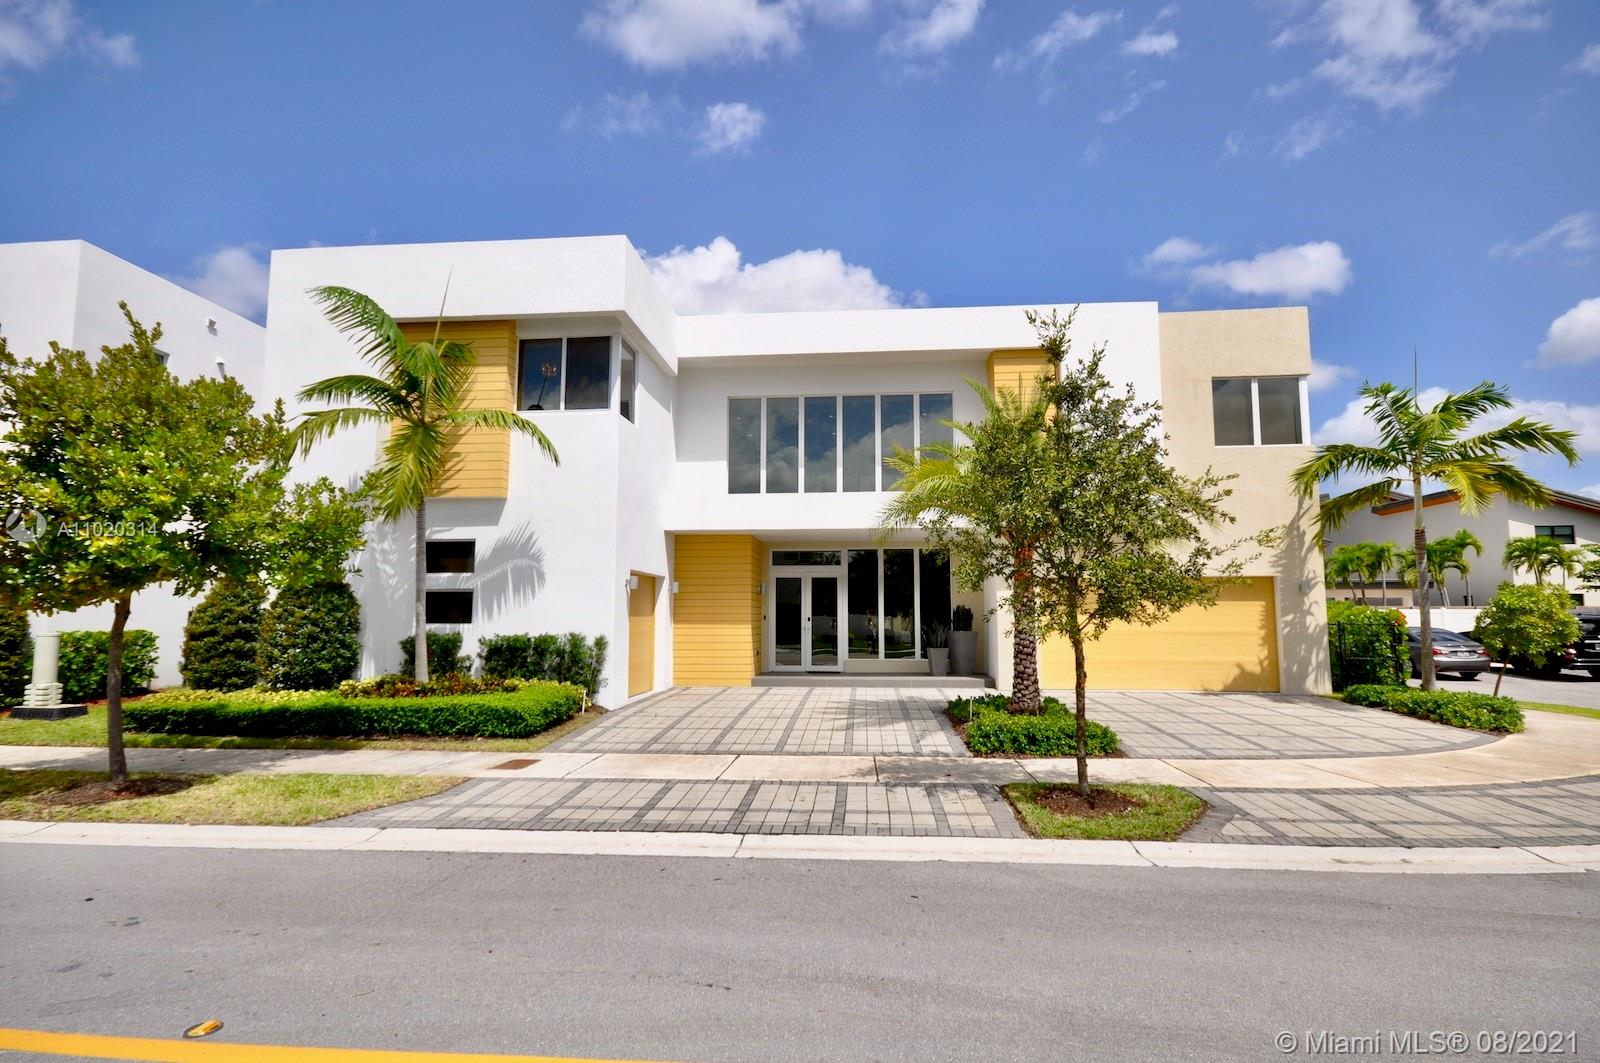 Doral Commons Residential - 10223 NW 75th Ter, Doral, FL 33178